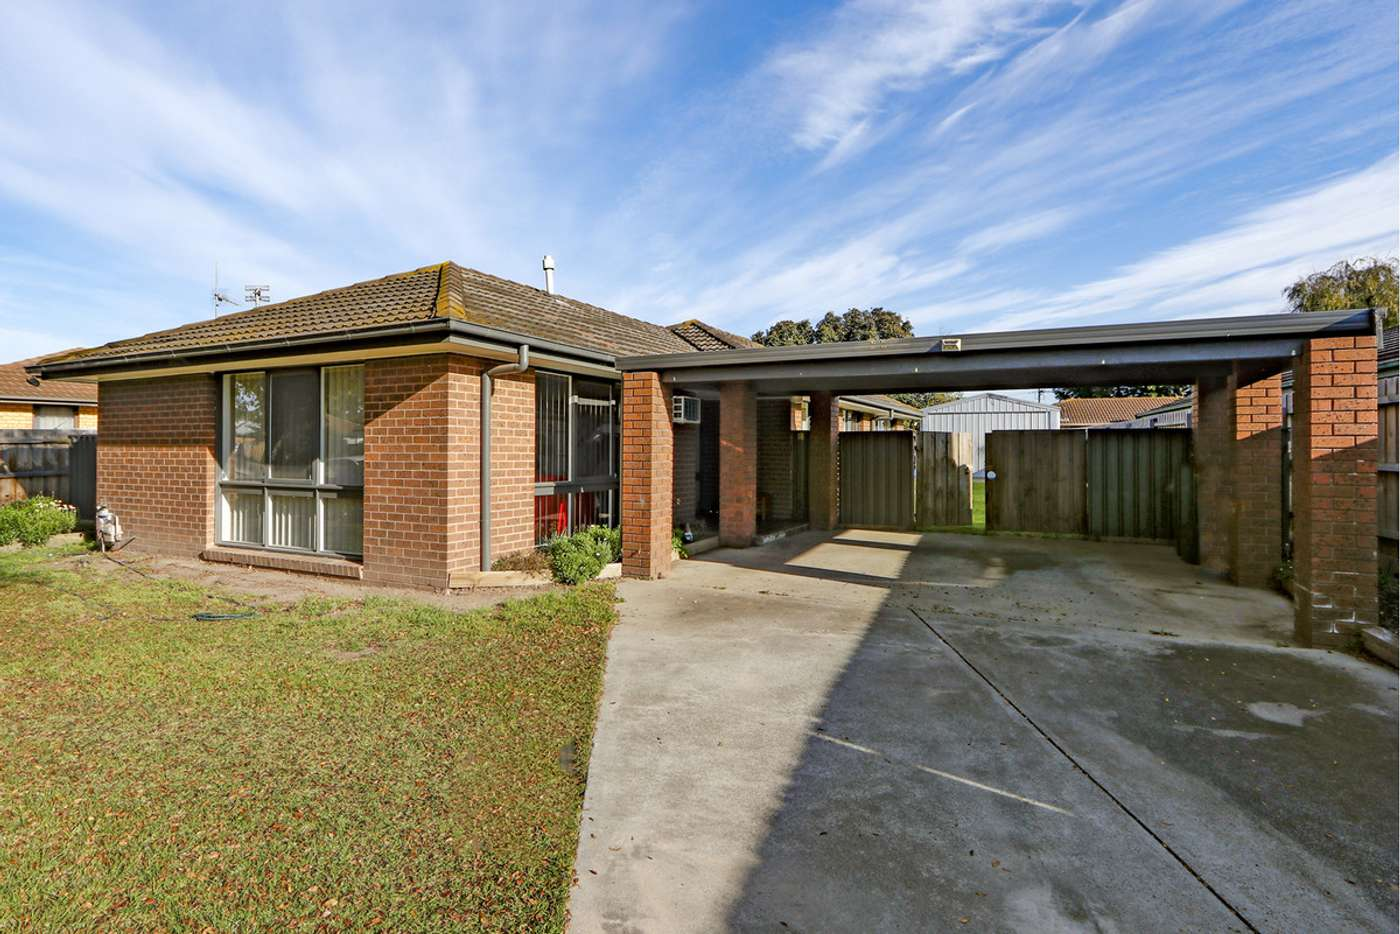 Main view of Homely house listing, 19 Coverdale Drive, Sale VIC 3850